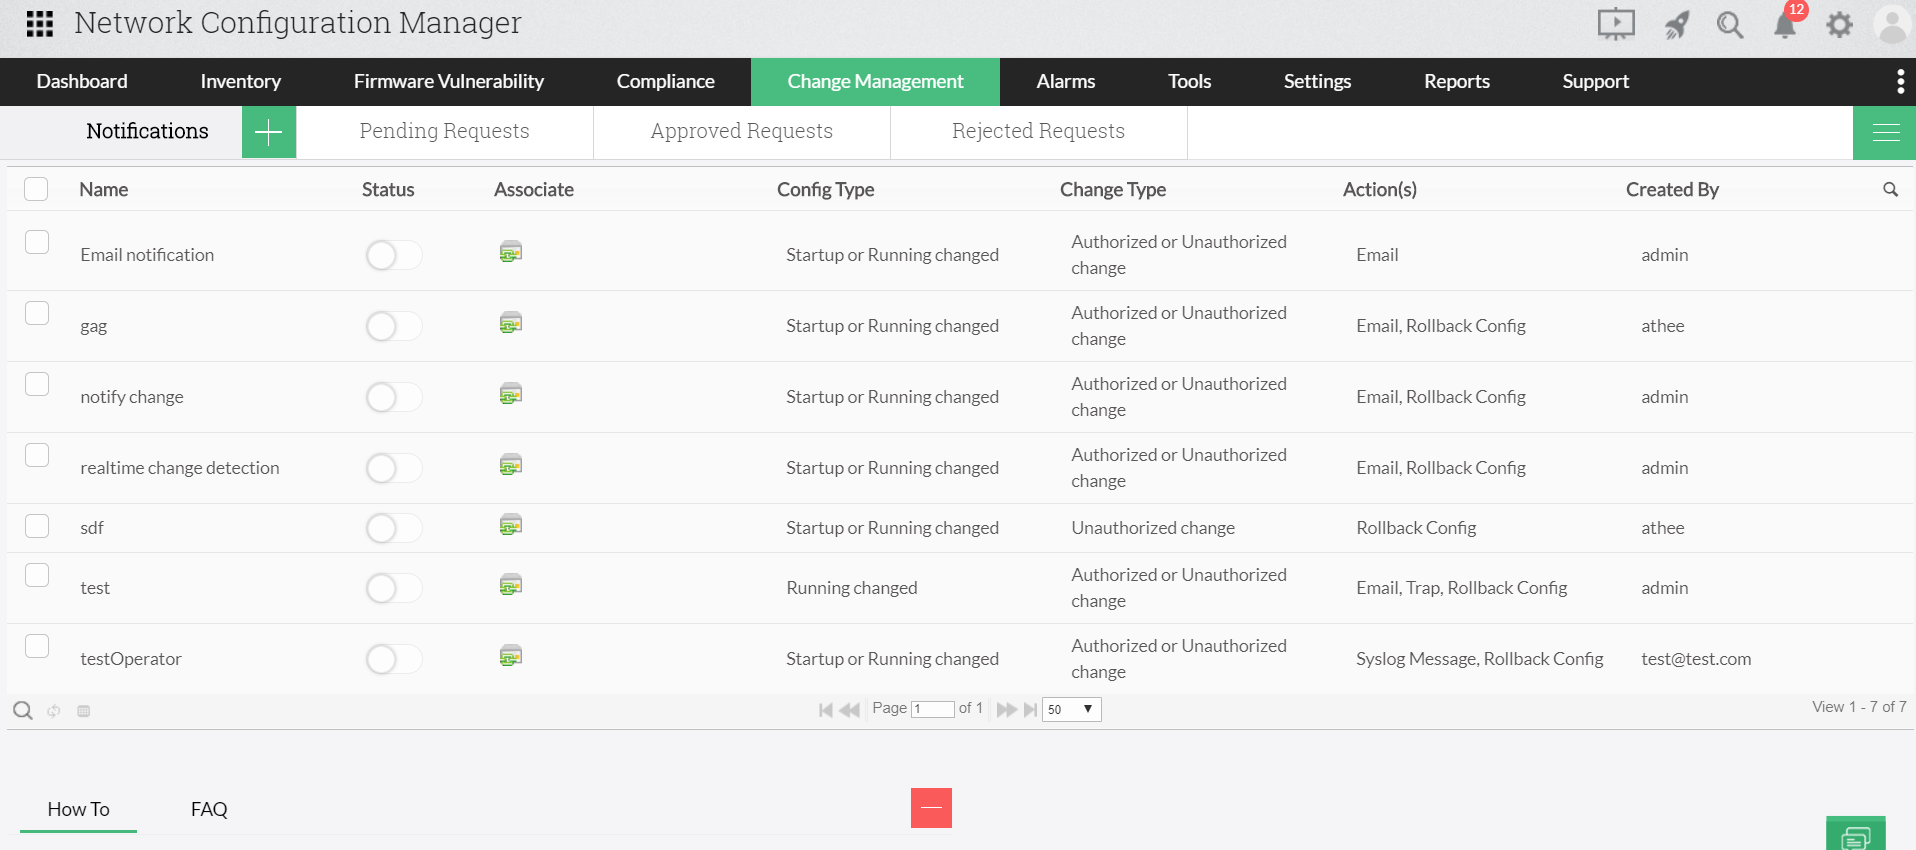 Manage Siemens configuration changes - ManageEngine Network Configuration Manager